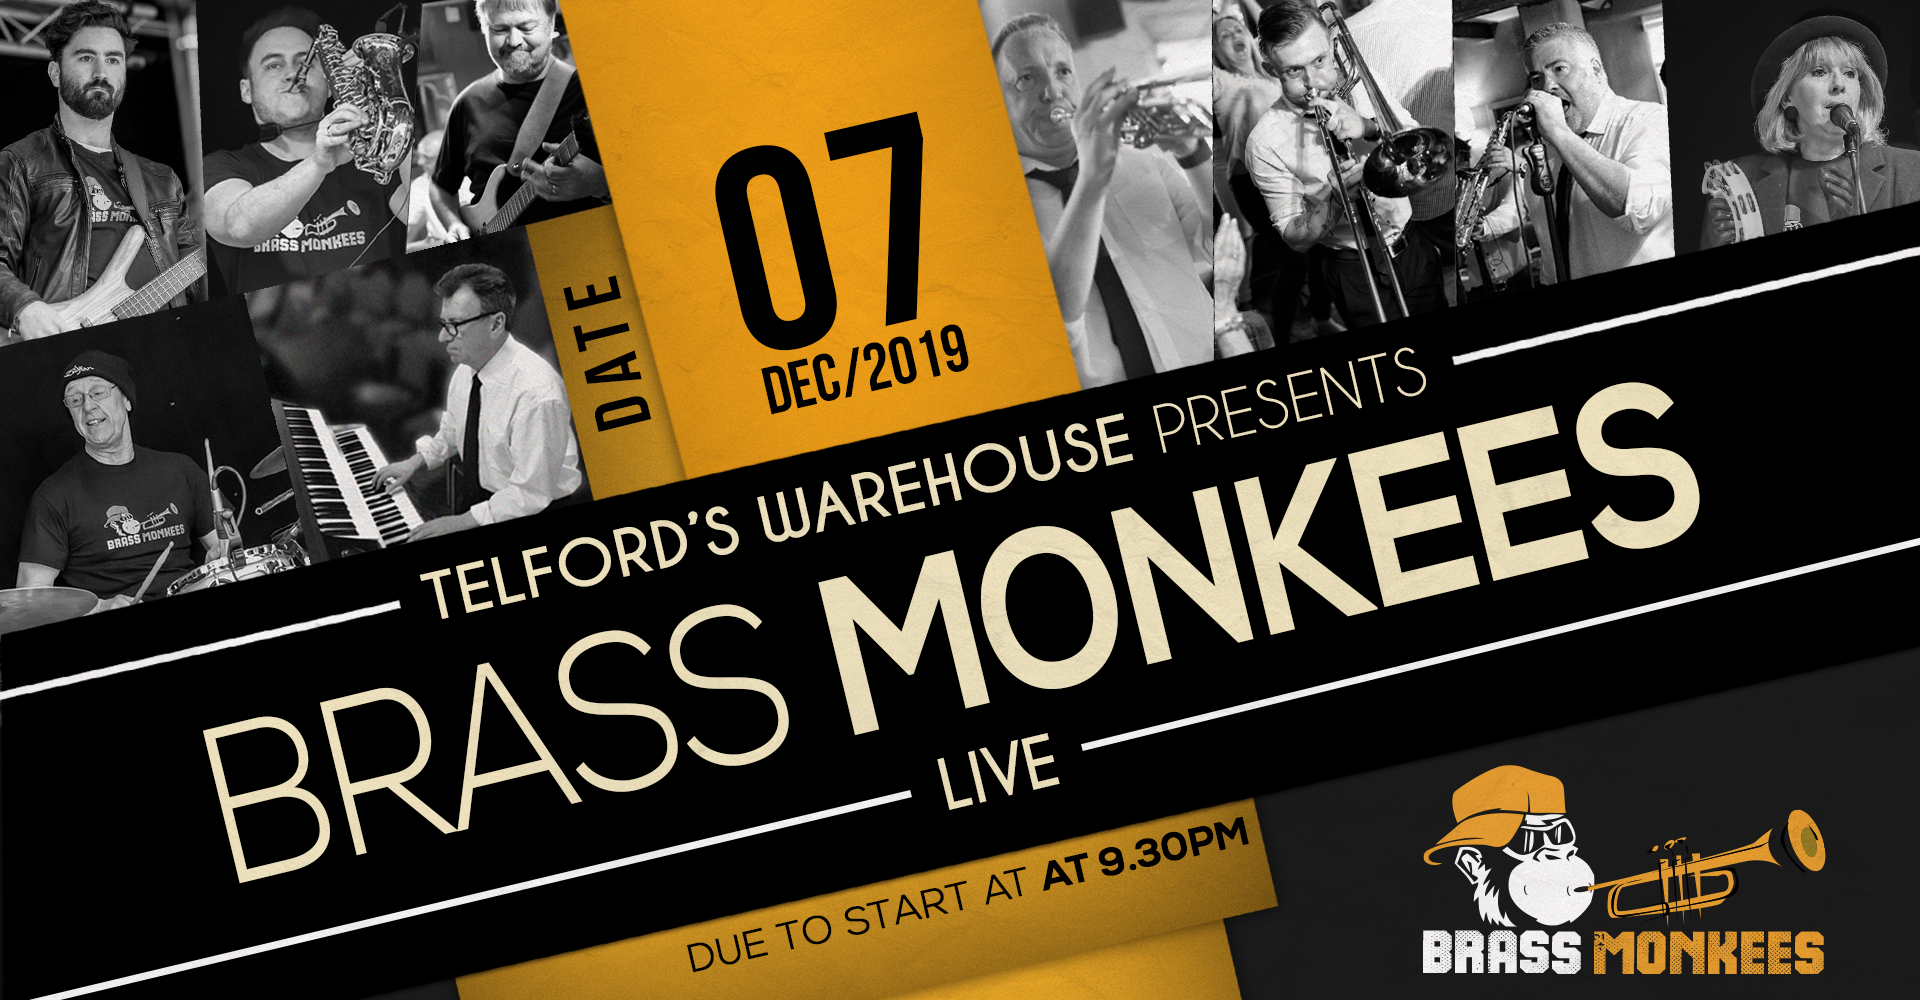 Brass Monkees at Telford's Warehouse